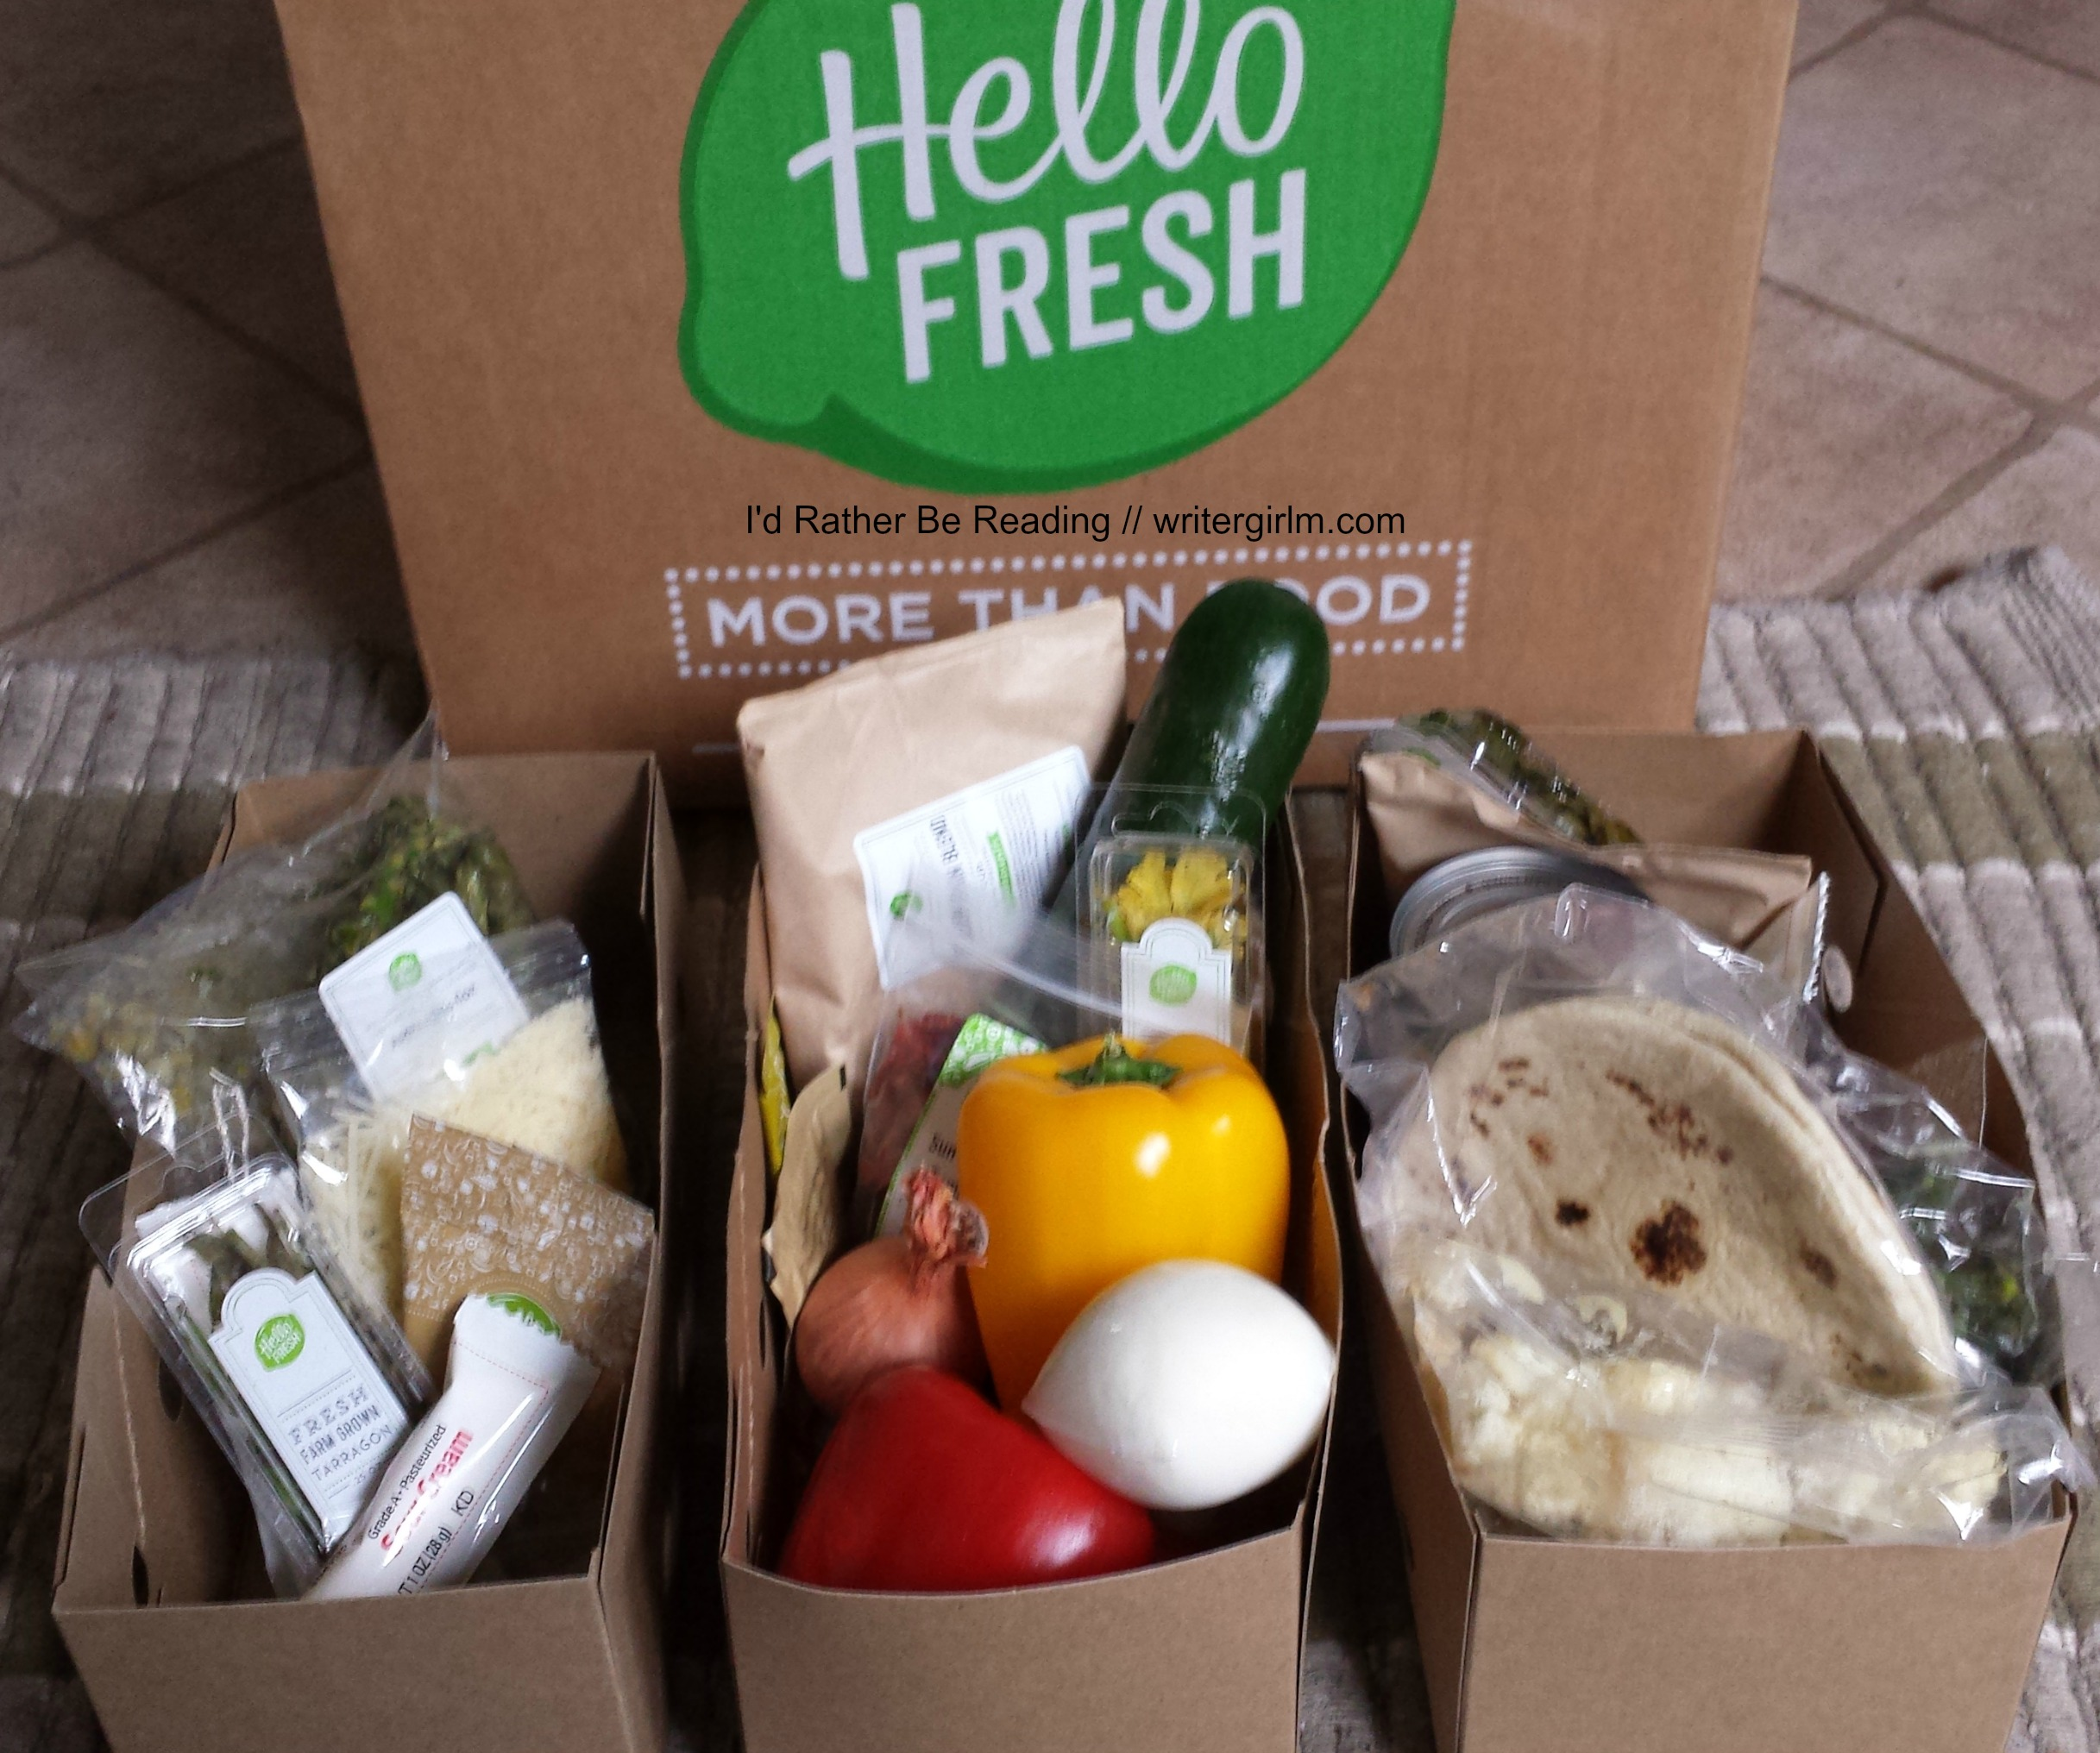 Hello Fresh takes all the work out of meal prep with prepacked boxes and easy-to-follow recipe cards.